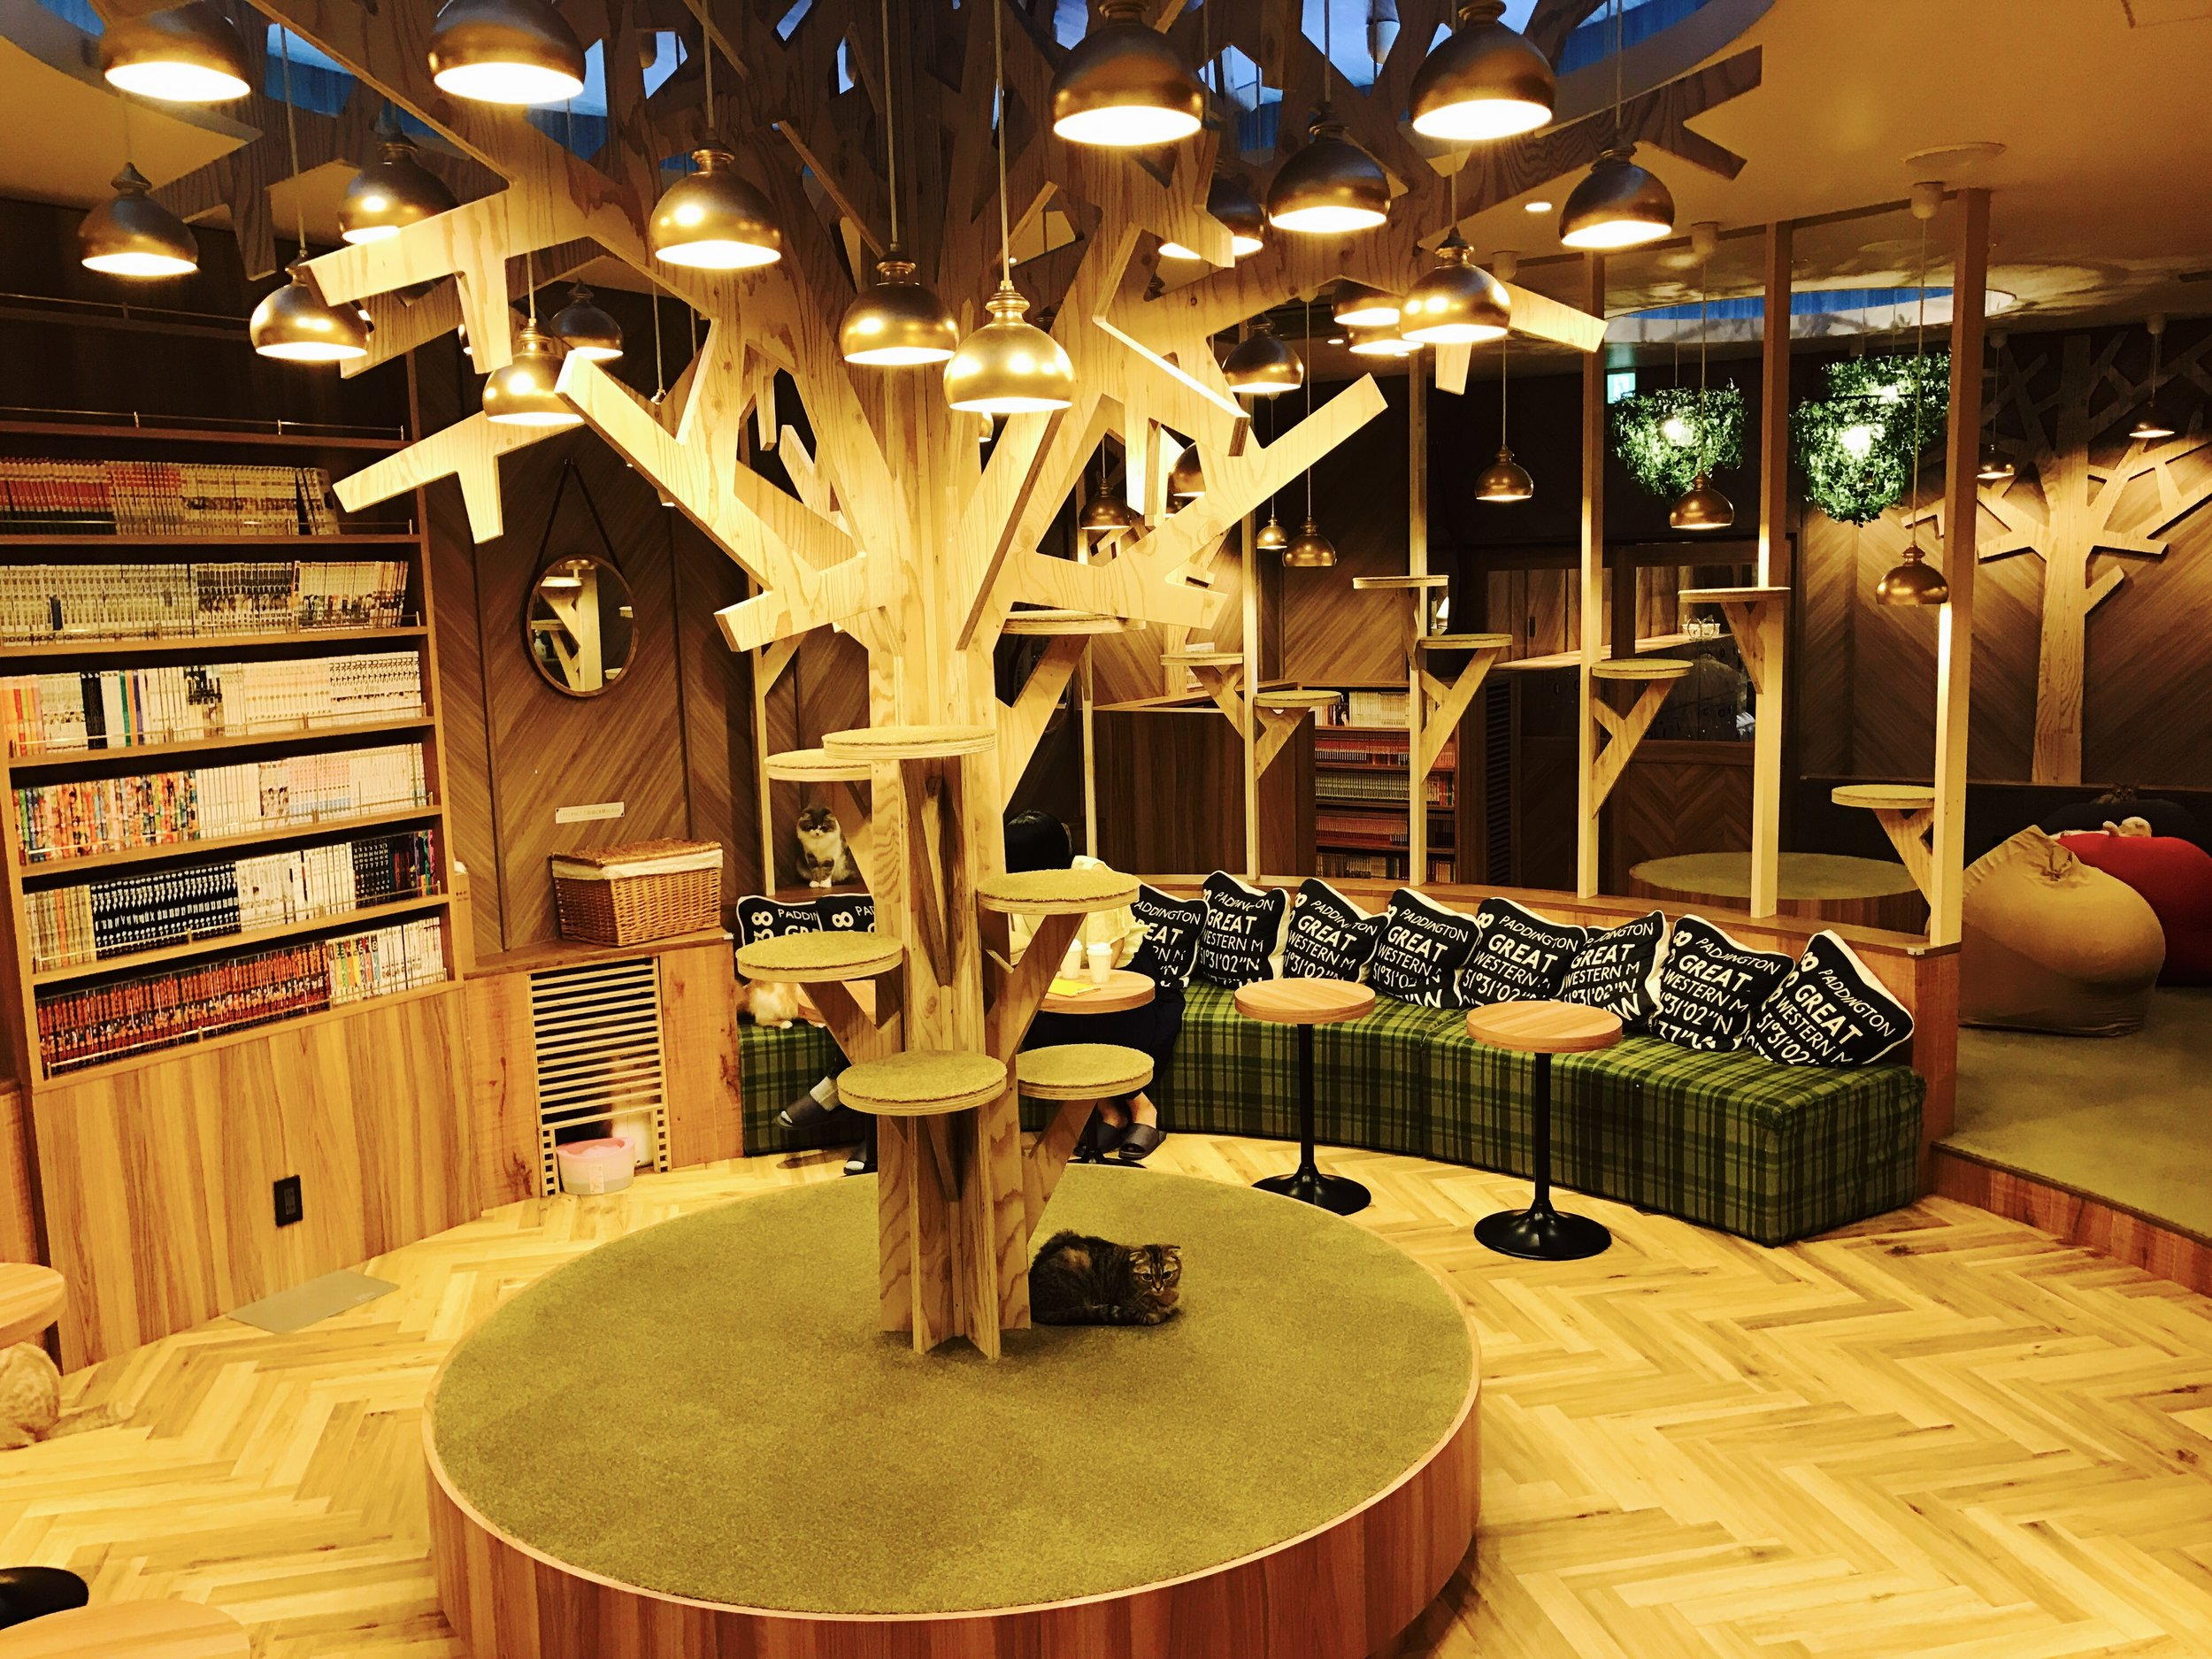 Cafe Mocha is known for its beautiful interiors featuring a signature wooden tree that the cats can climb